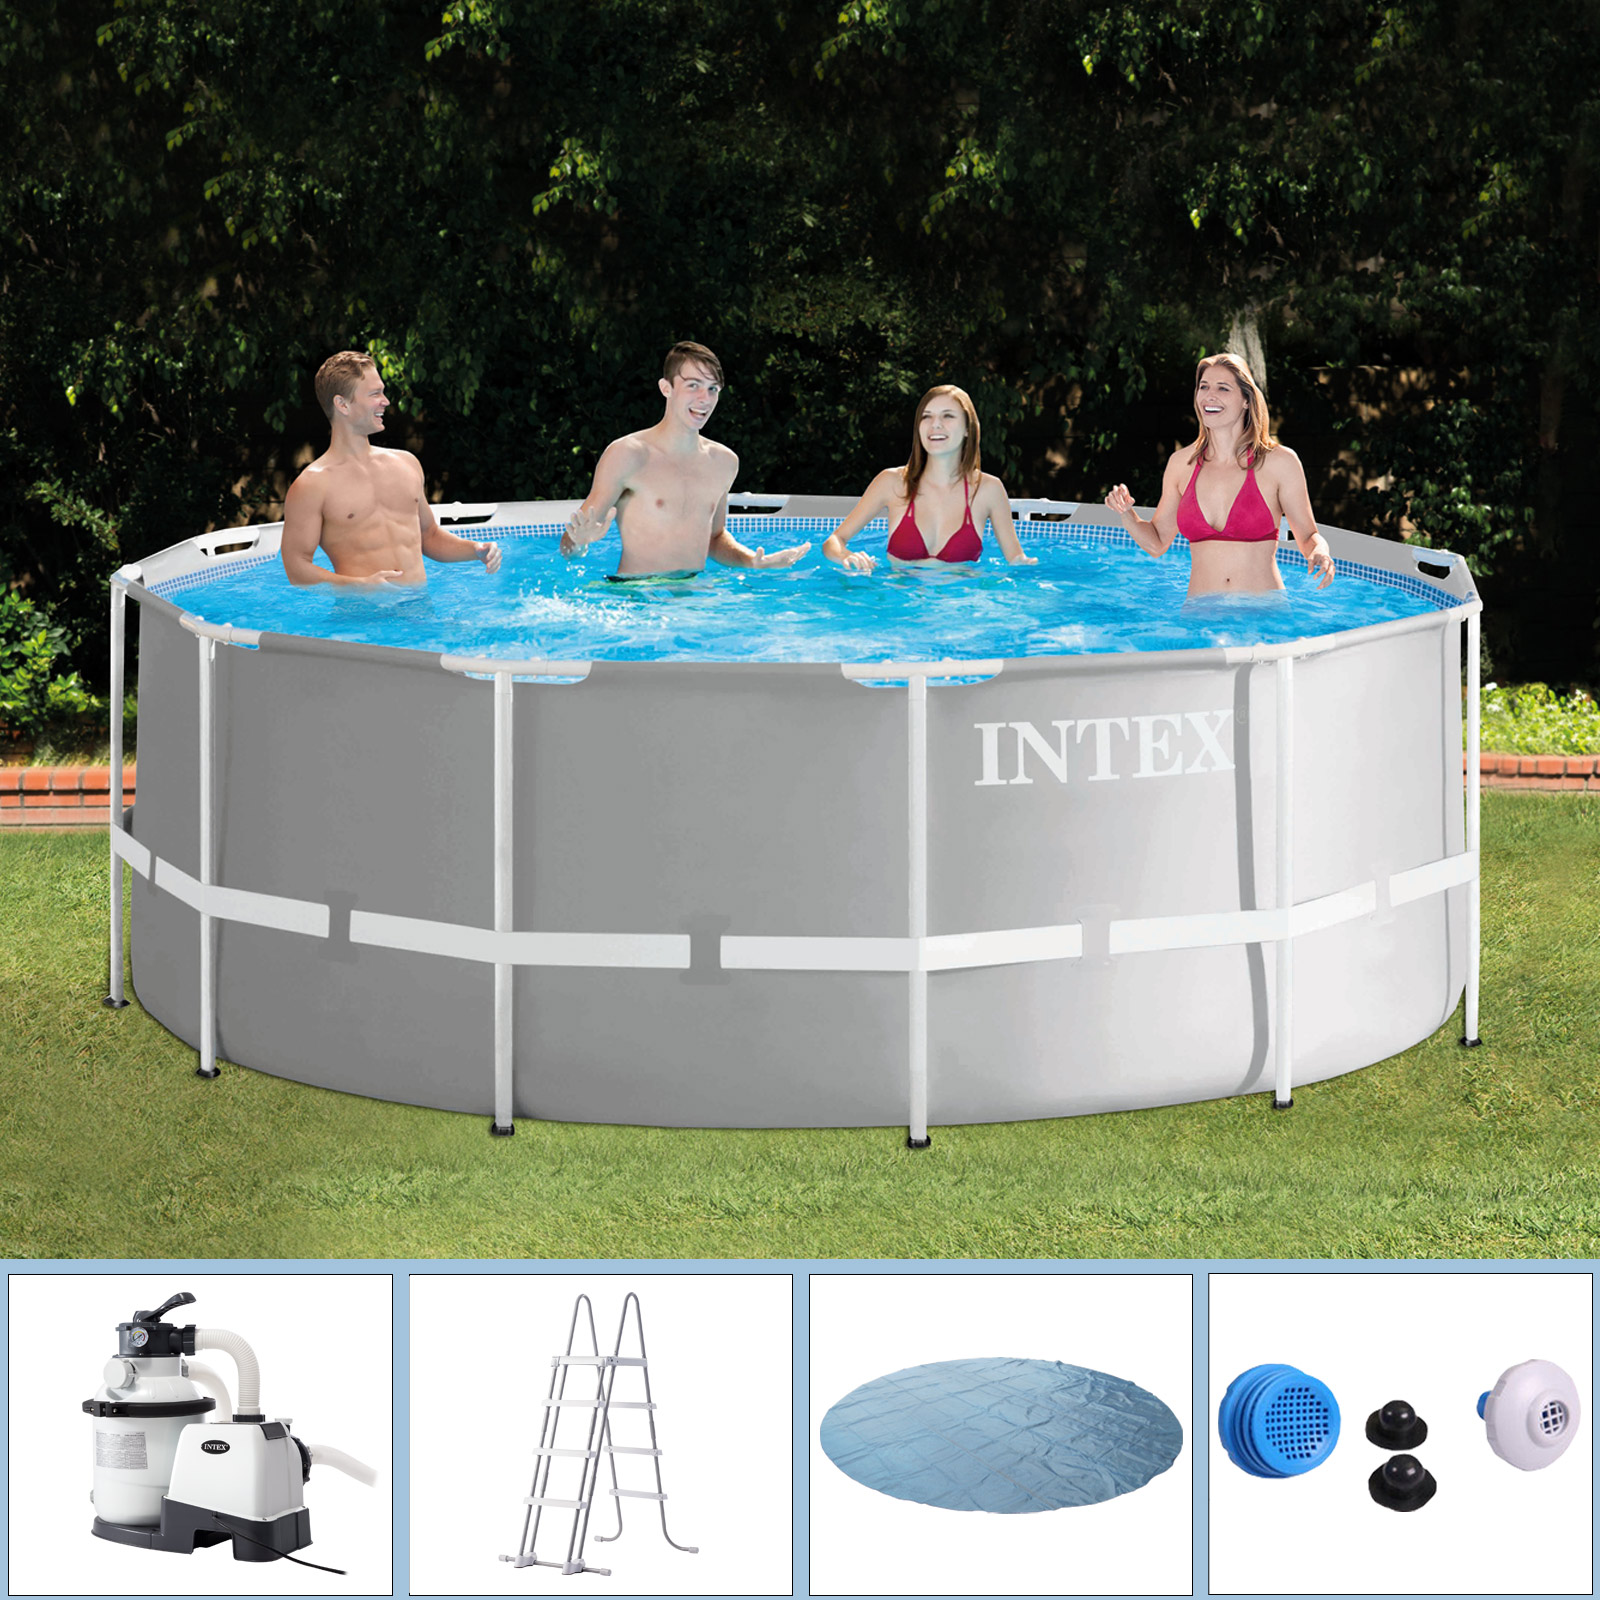 Intex Pool Komplettset Mit Sandfilteranlage Intex 366x122 Komplettset Swimming Pool Schwimmbad Frame